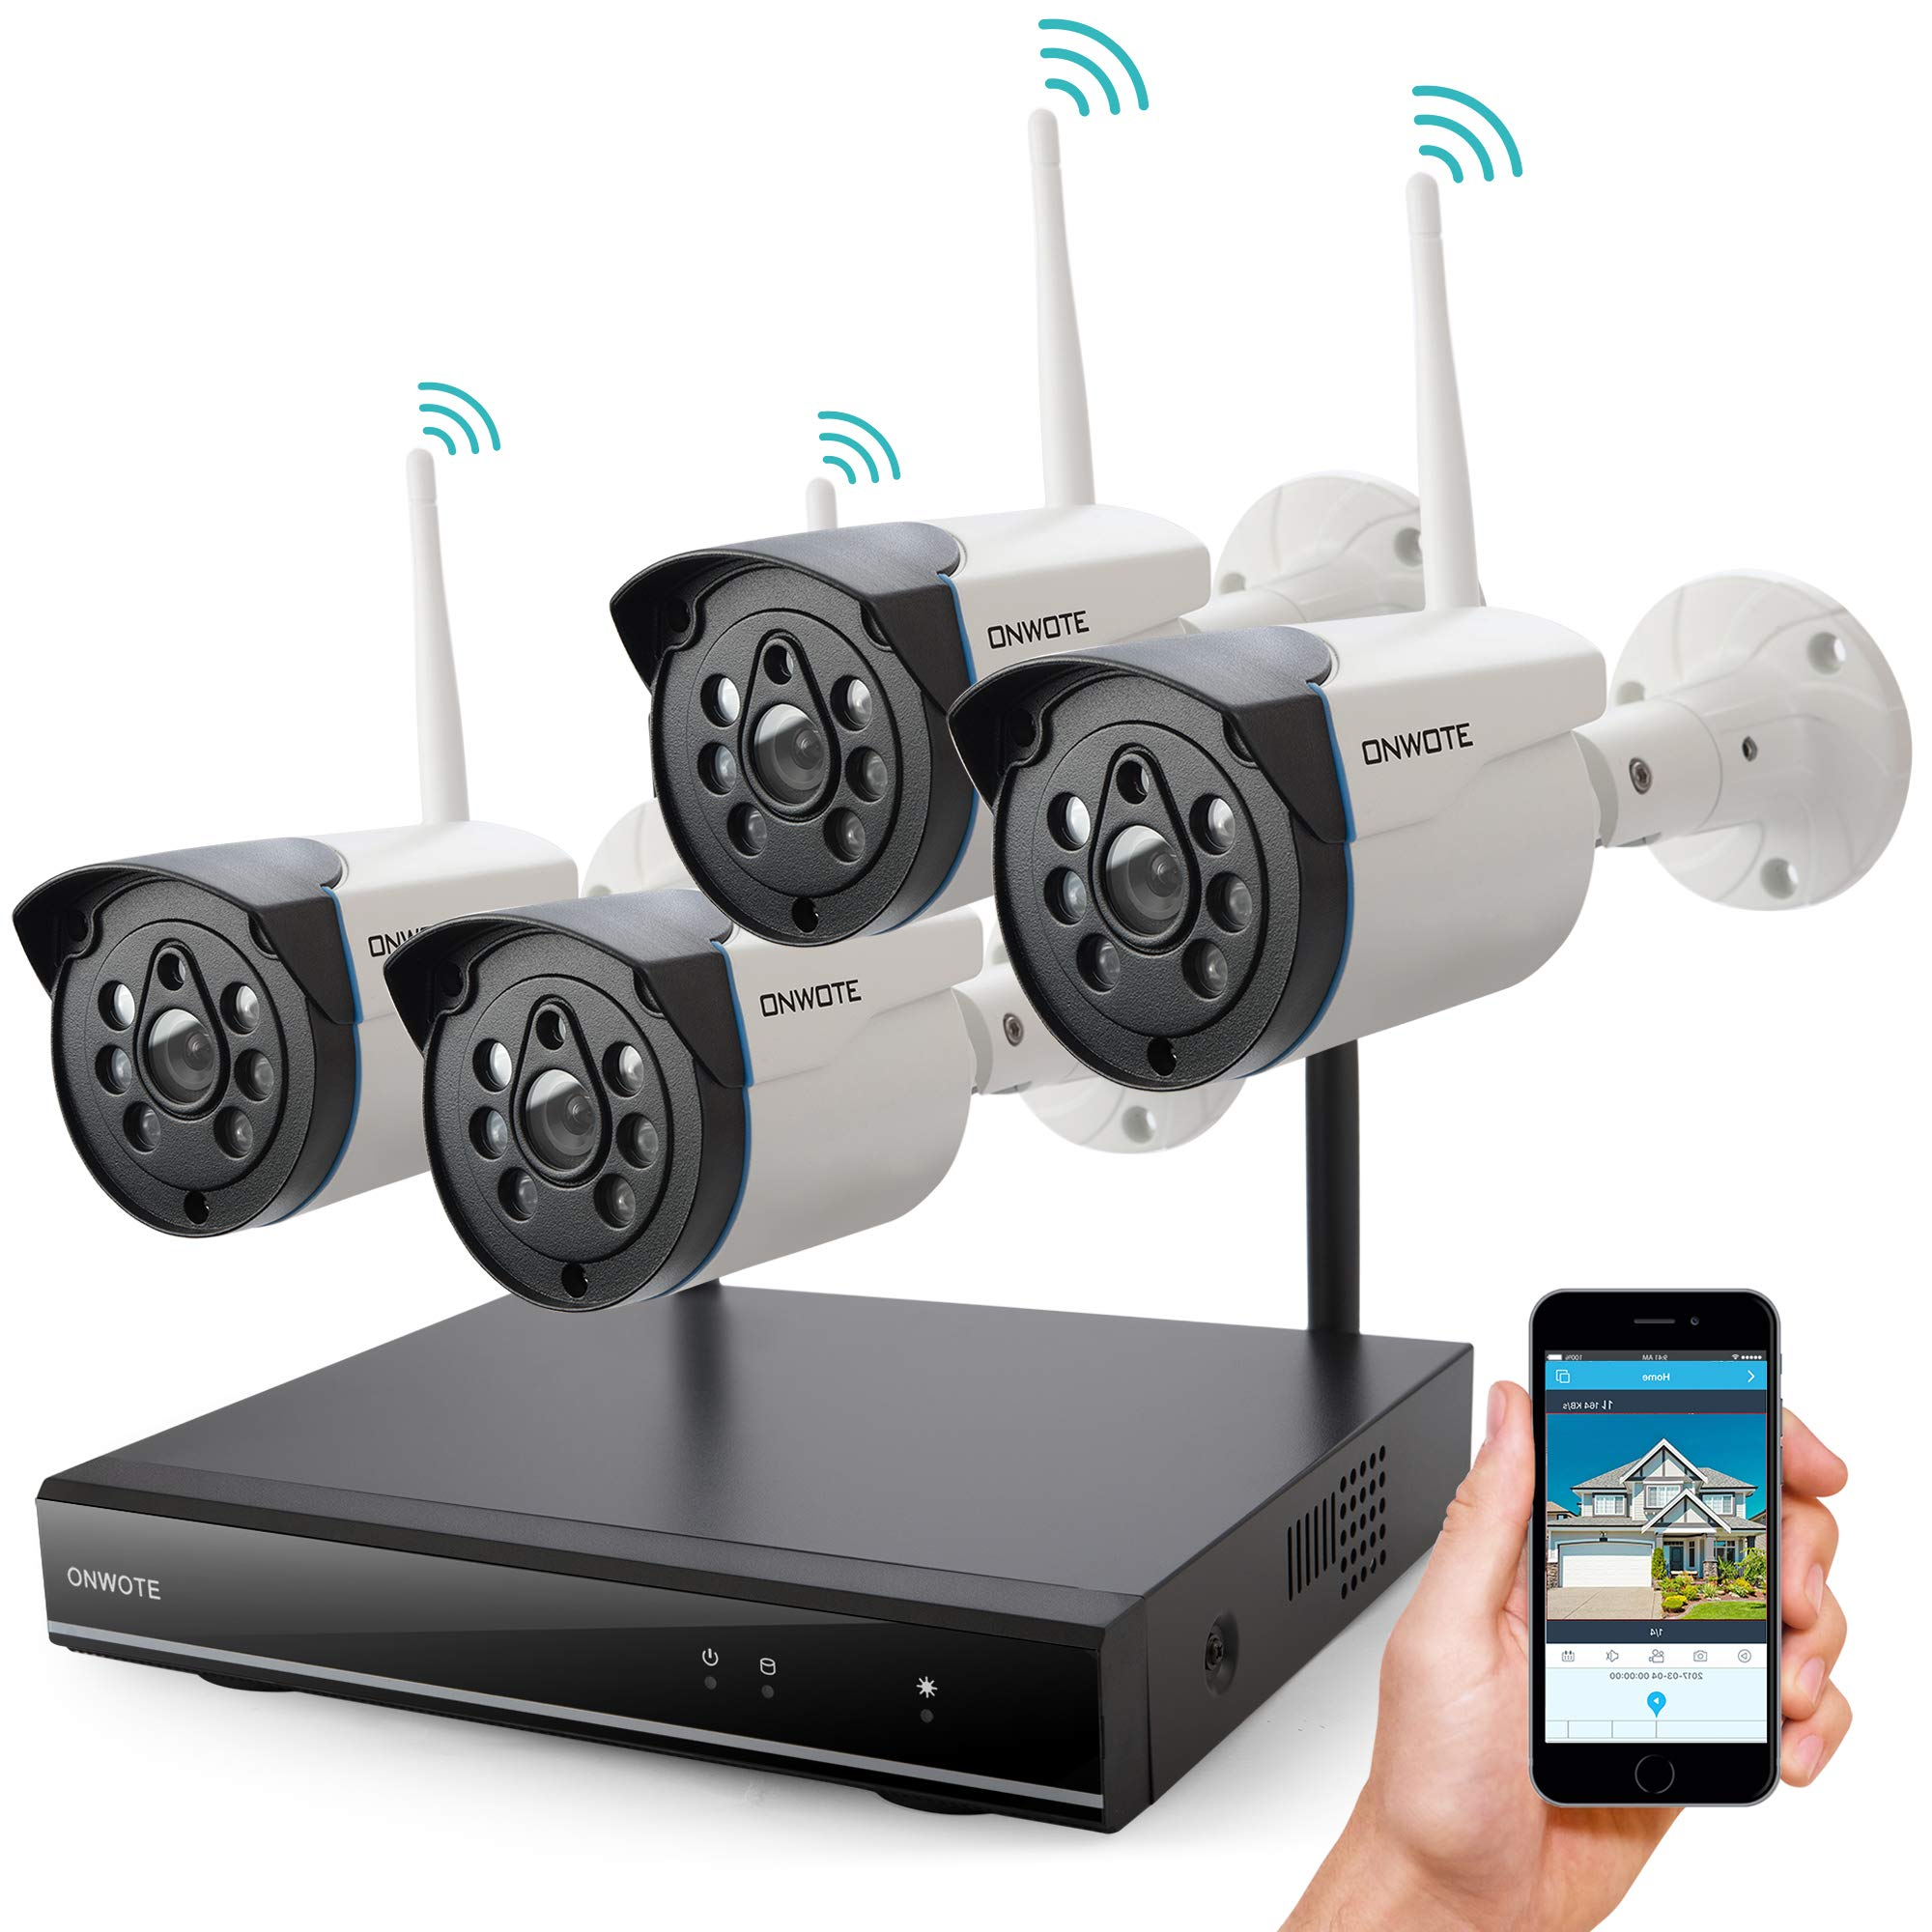 Wireless Security Camera System Outdoor, ONWOTE 1080P HD NVR, 4 960P HD 1.3MP Night Vision WiFi Surveillance Cameras for Home Security, NO Hard Drive (Built-in Router, Auto Pair, Mobile View) by ONWOTE